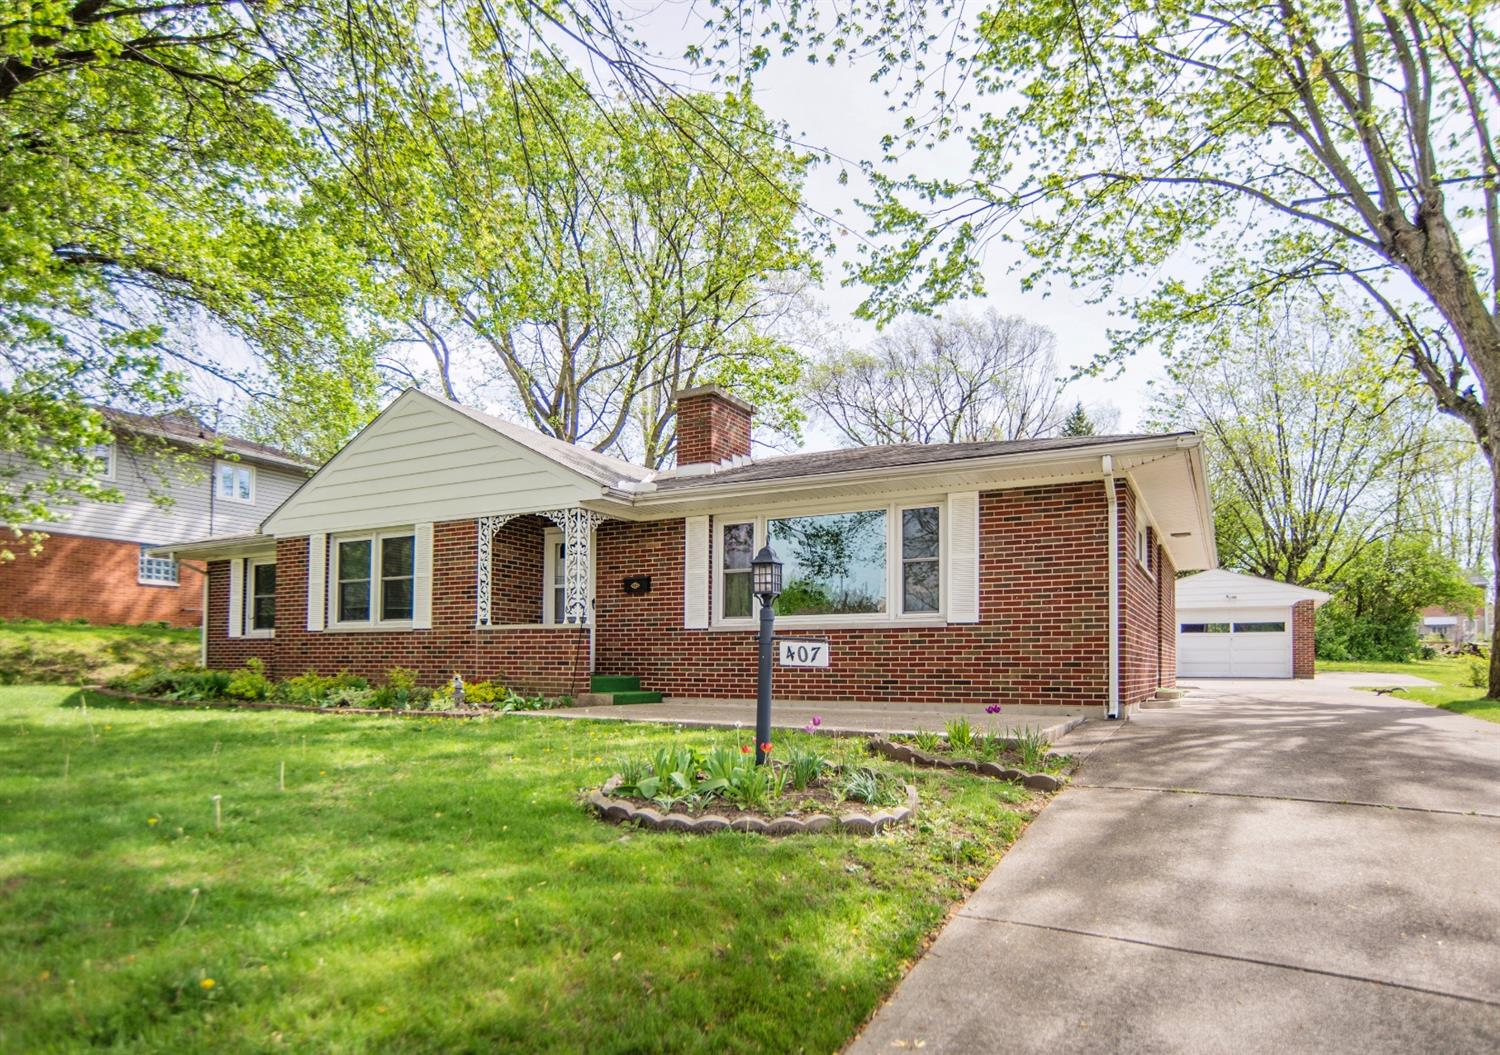 407 Eastline Dr Middletown South, OH